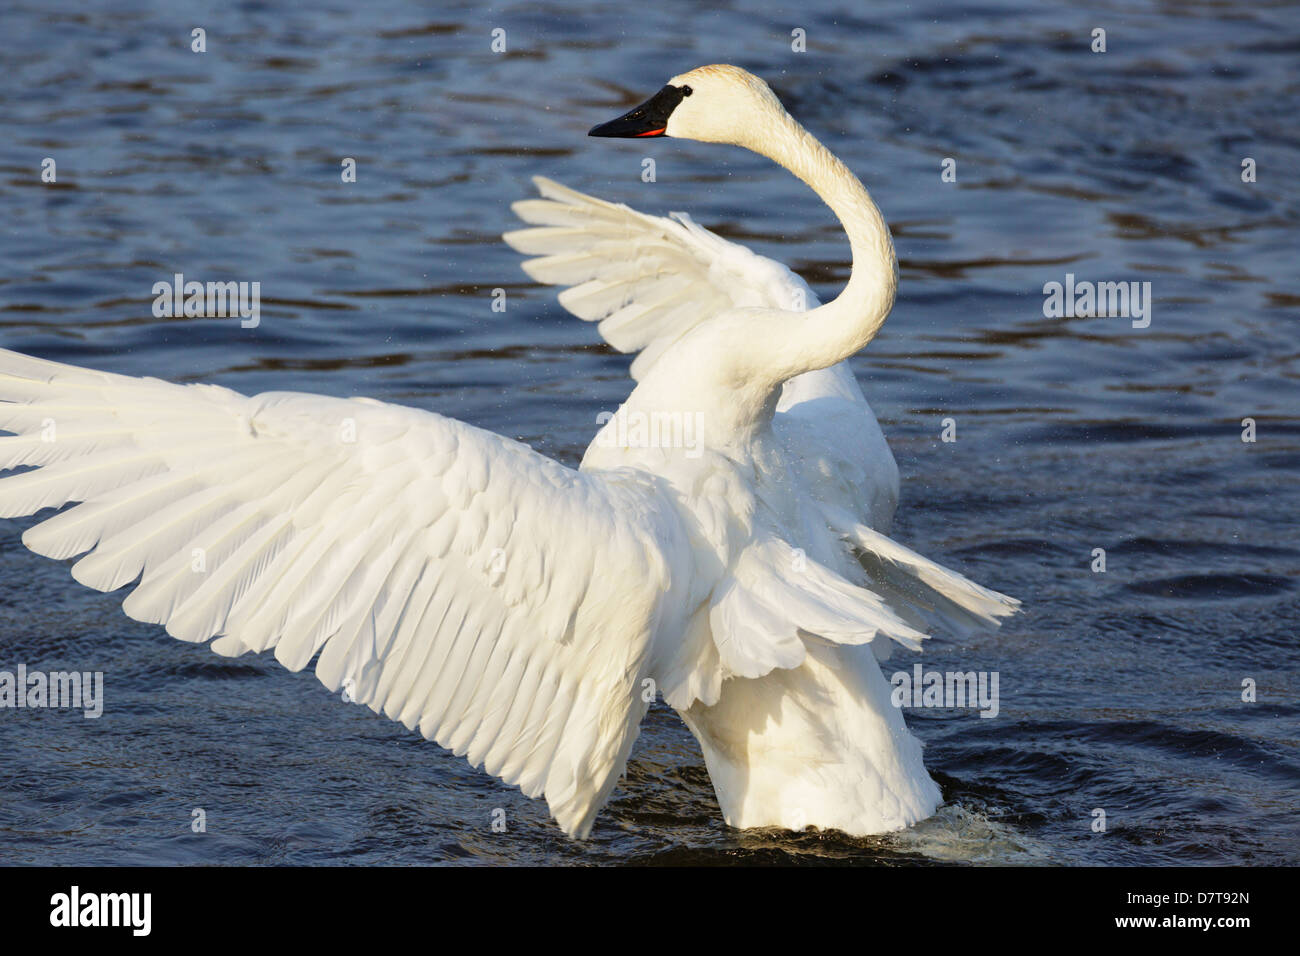 A Trumpeter Swan on the Mississippi River extends its massive wings - Minnesota, USA. - Stock Image